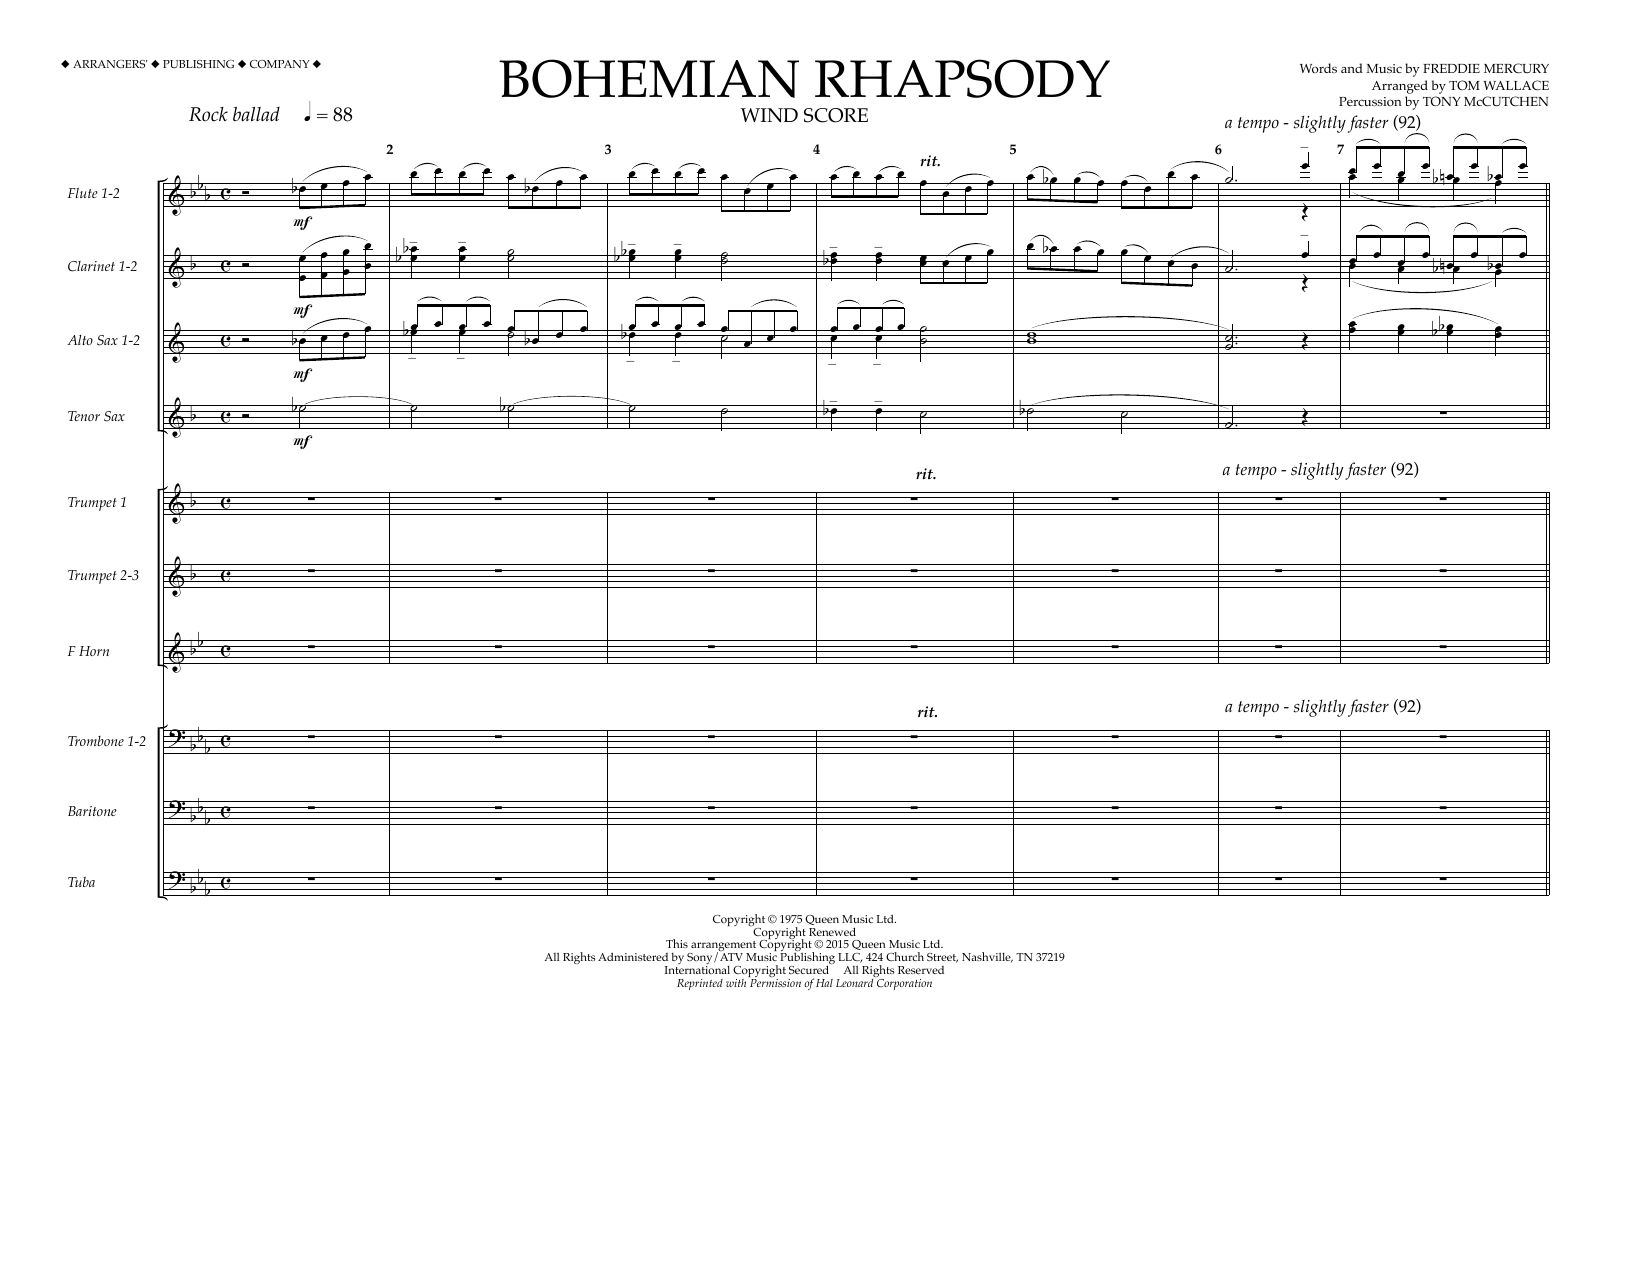 Tom Wallace Bohemian Rhapsody - Wind Score sheet music notes and chords. Download Printable PDF.